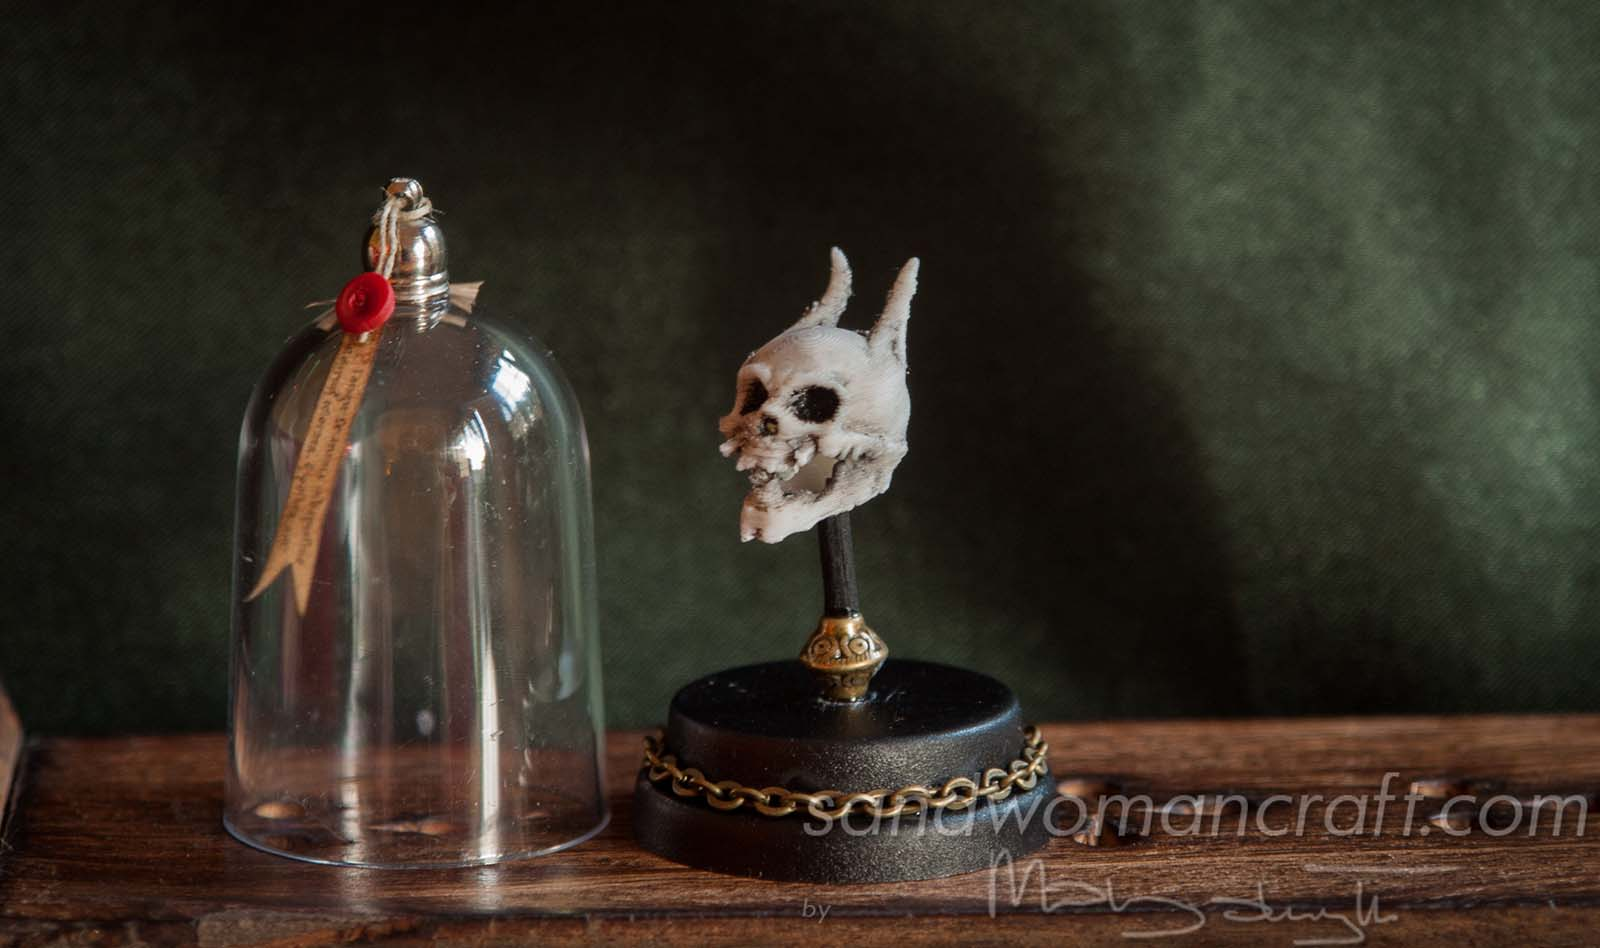 Miniature skull of monster devil in 1:12 scale, 1 inch scale